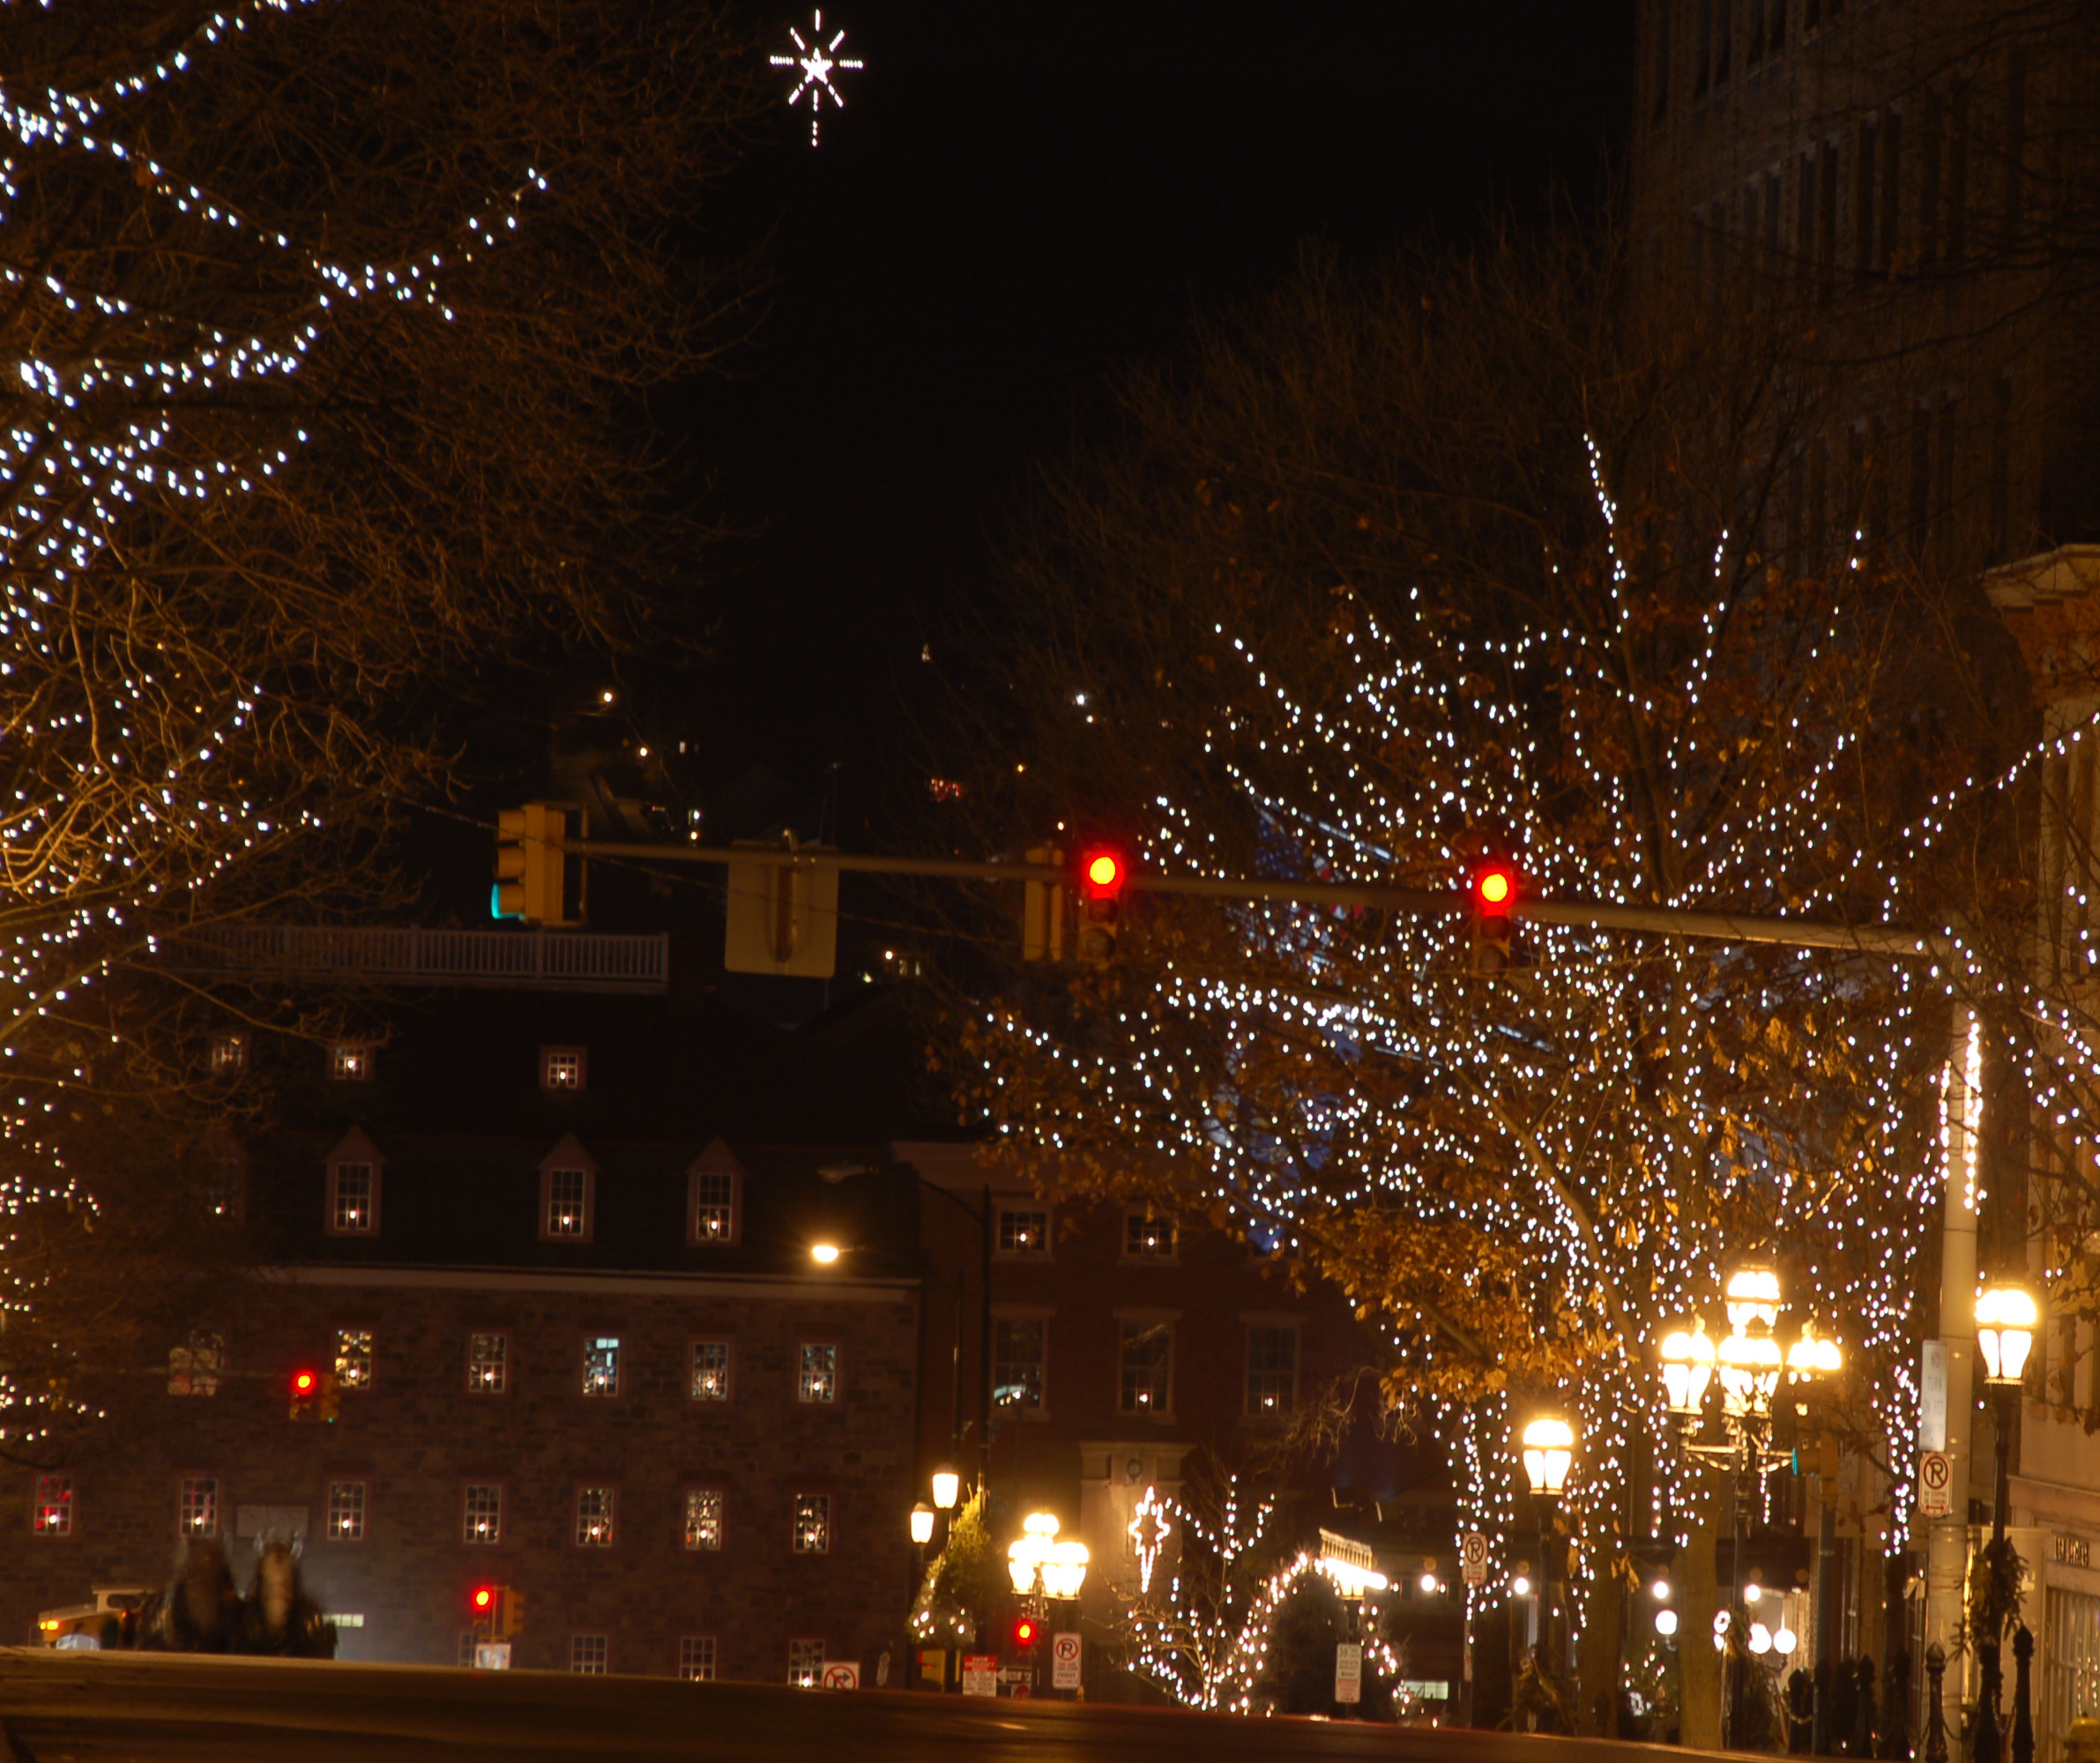 The star of Bethlehem viewed from Main Street ...